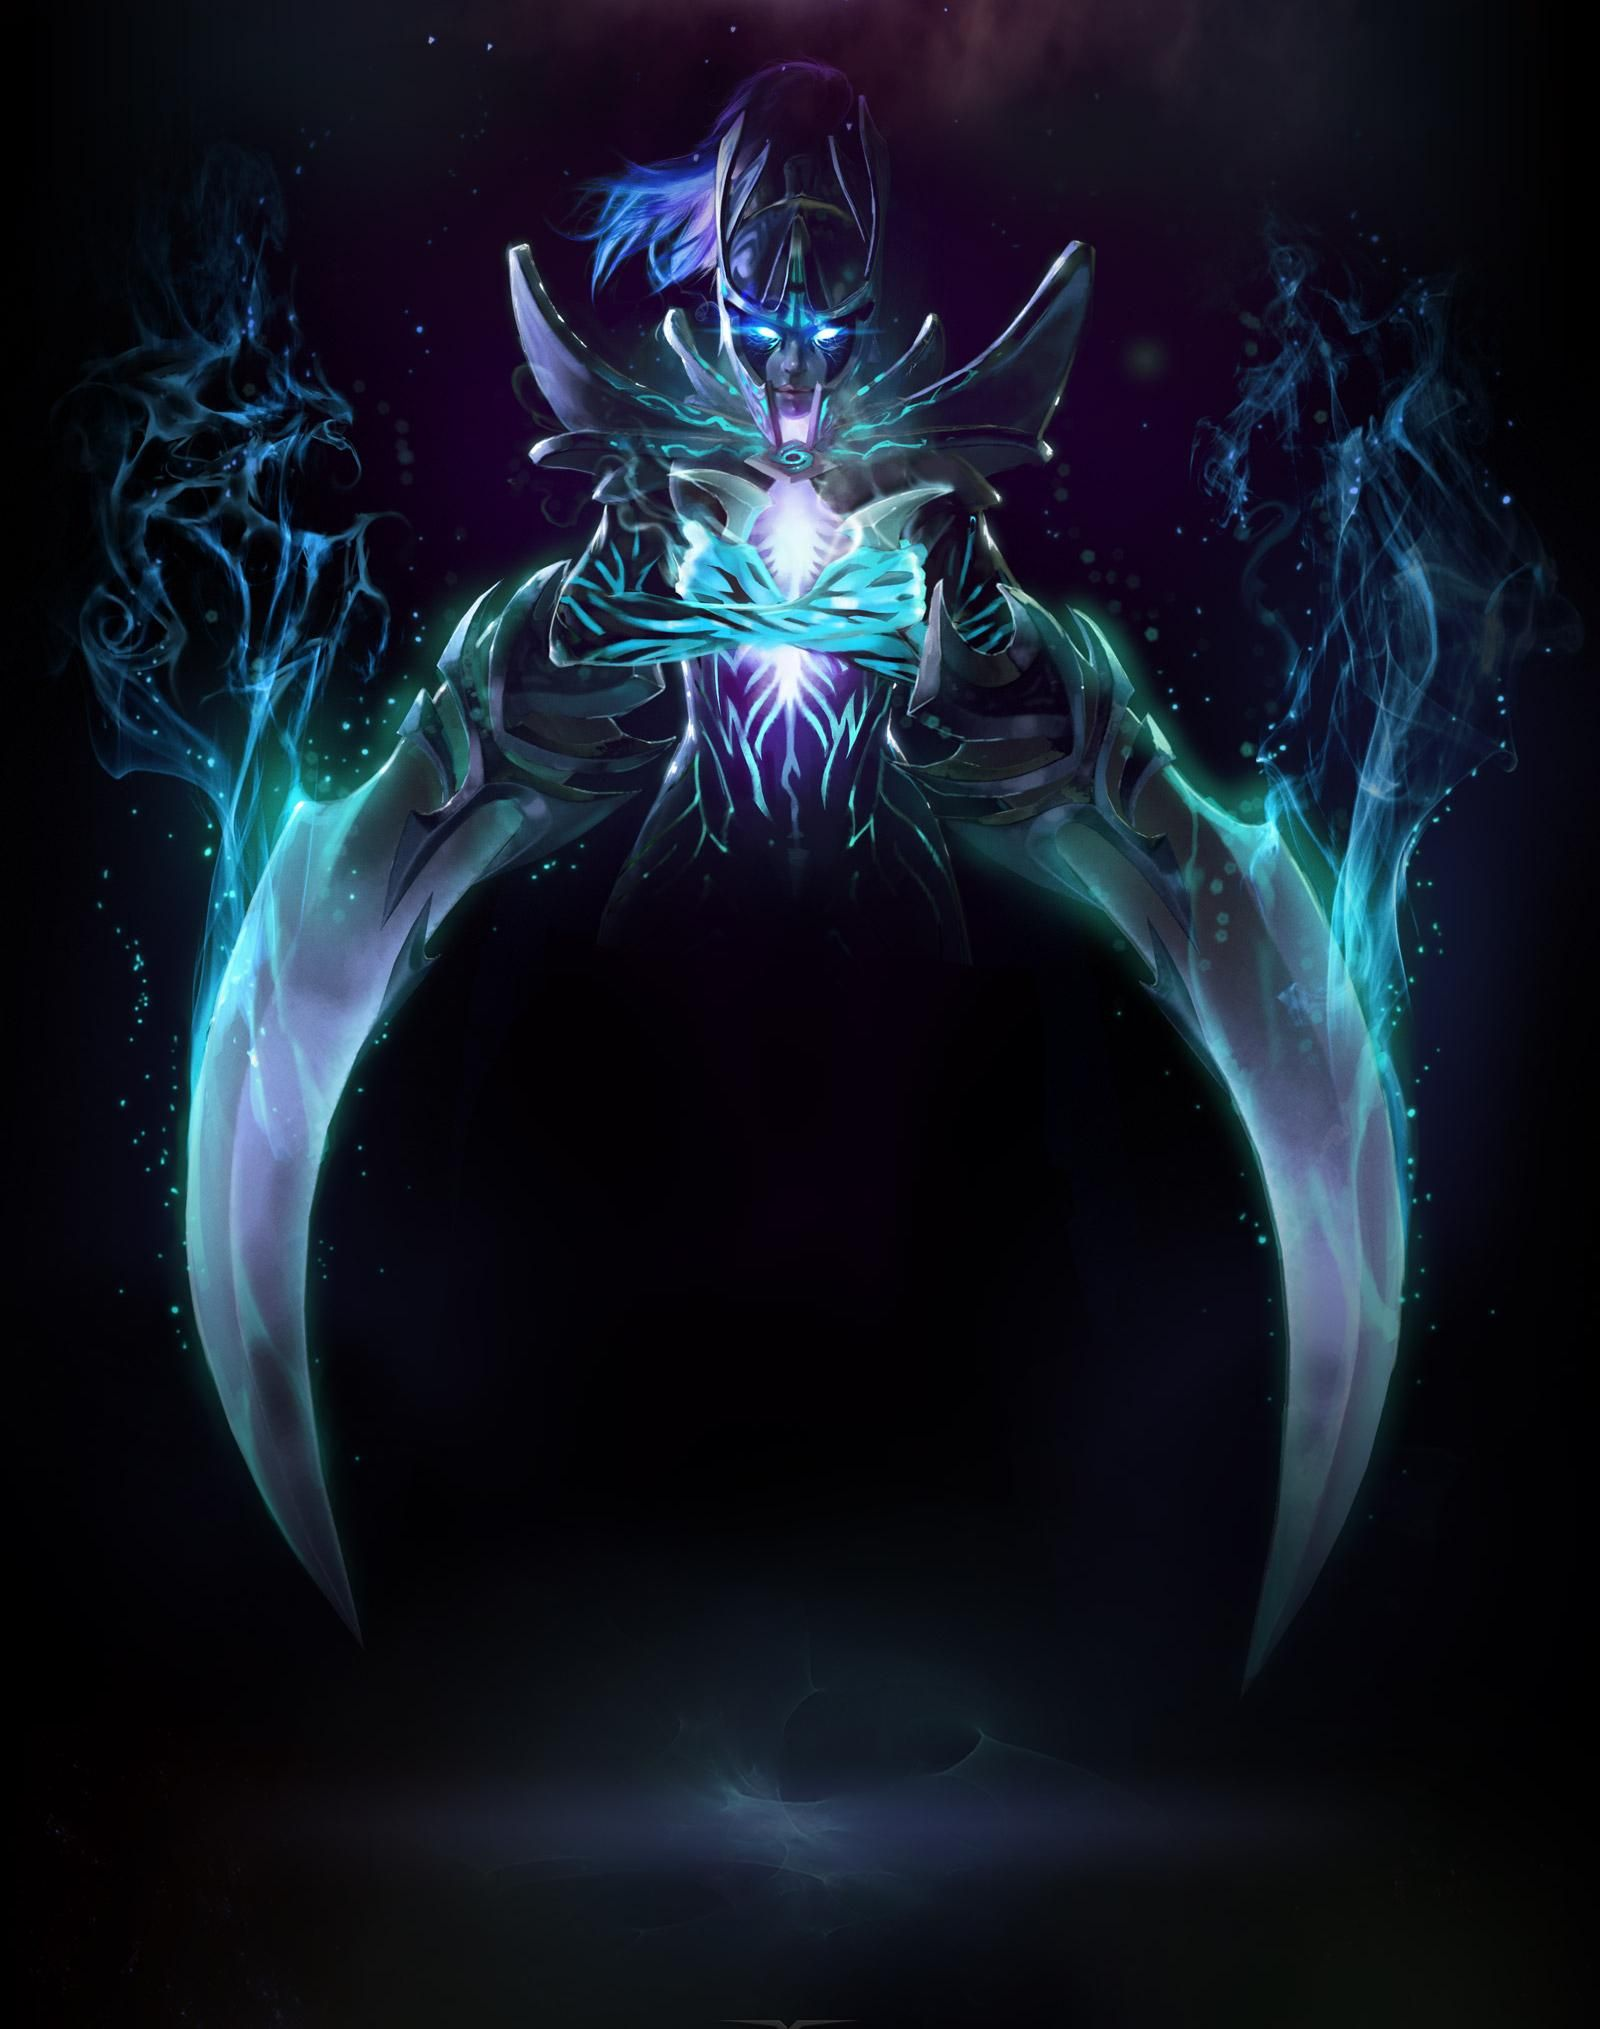 Phantom Assassin Arcana : phantom, assassin, arcana, Phantom, Assassin, Splash, Wallpaper,, Wallpapers